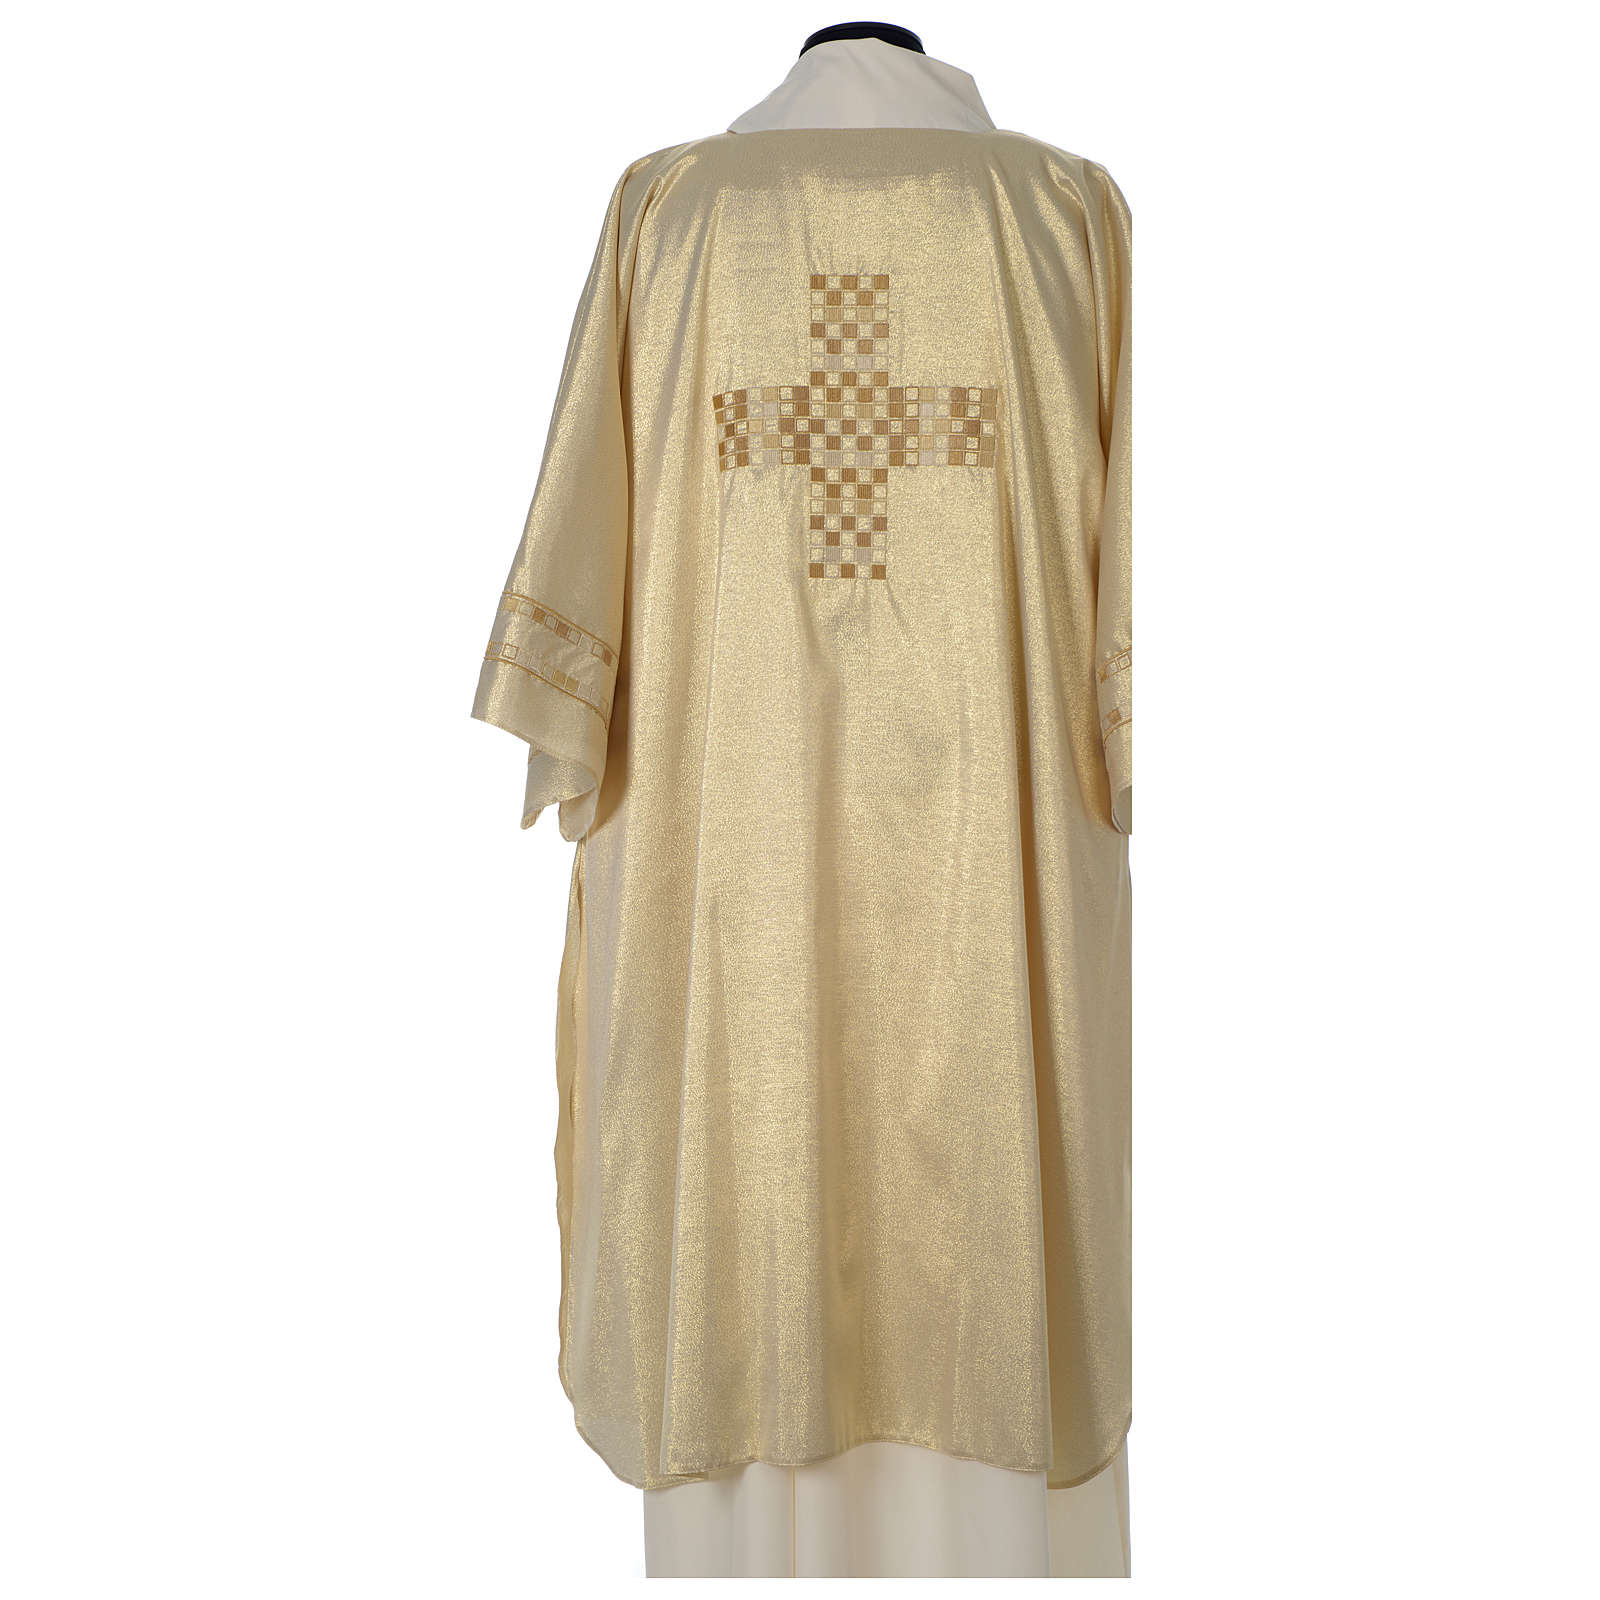 Dalmatic decorated with modern crosses, gold 4